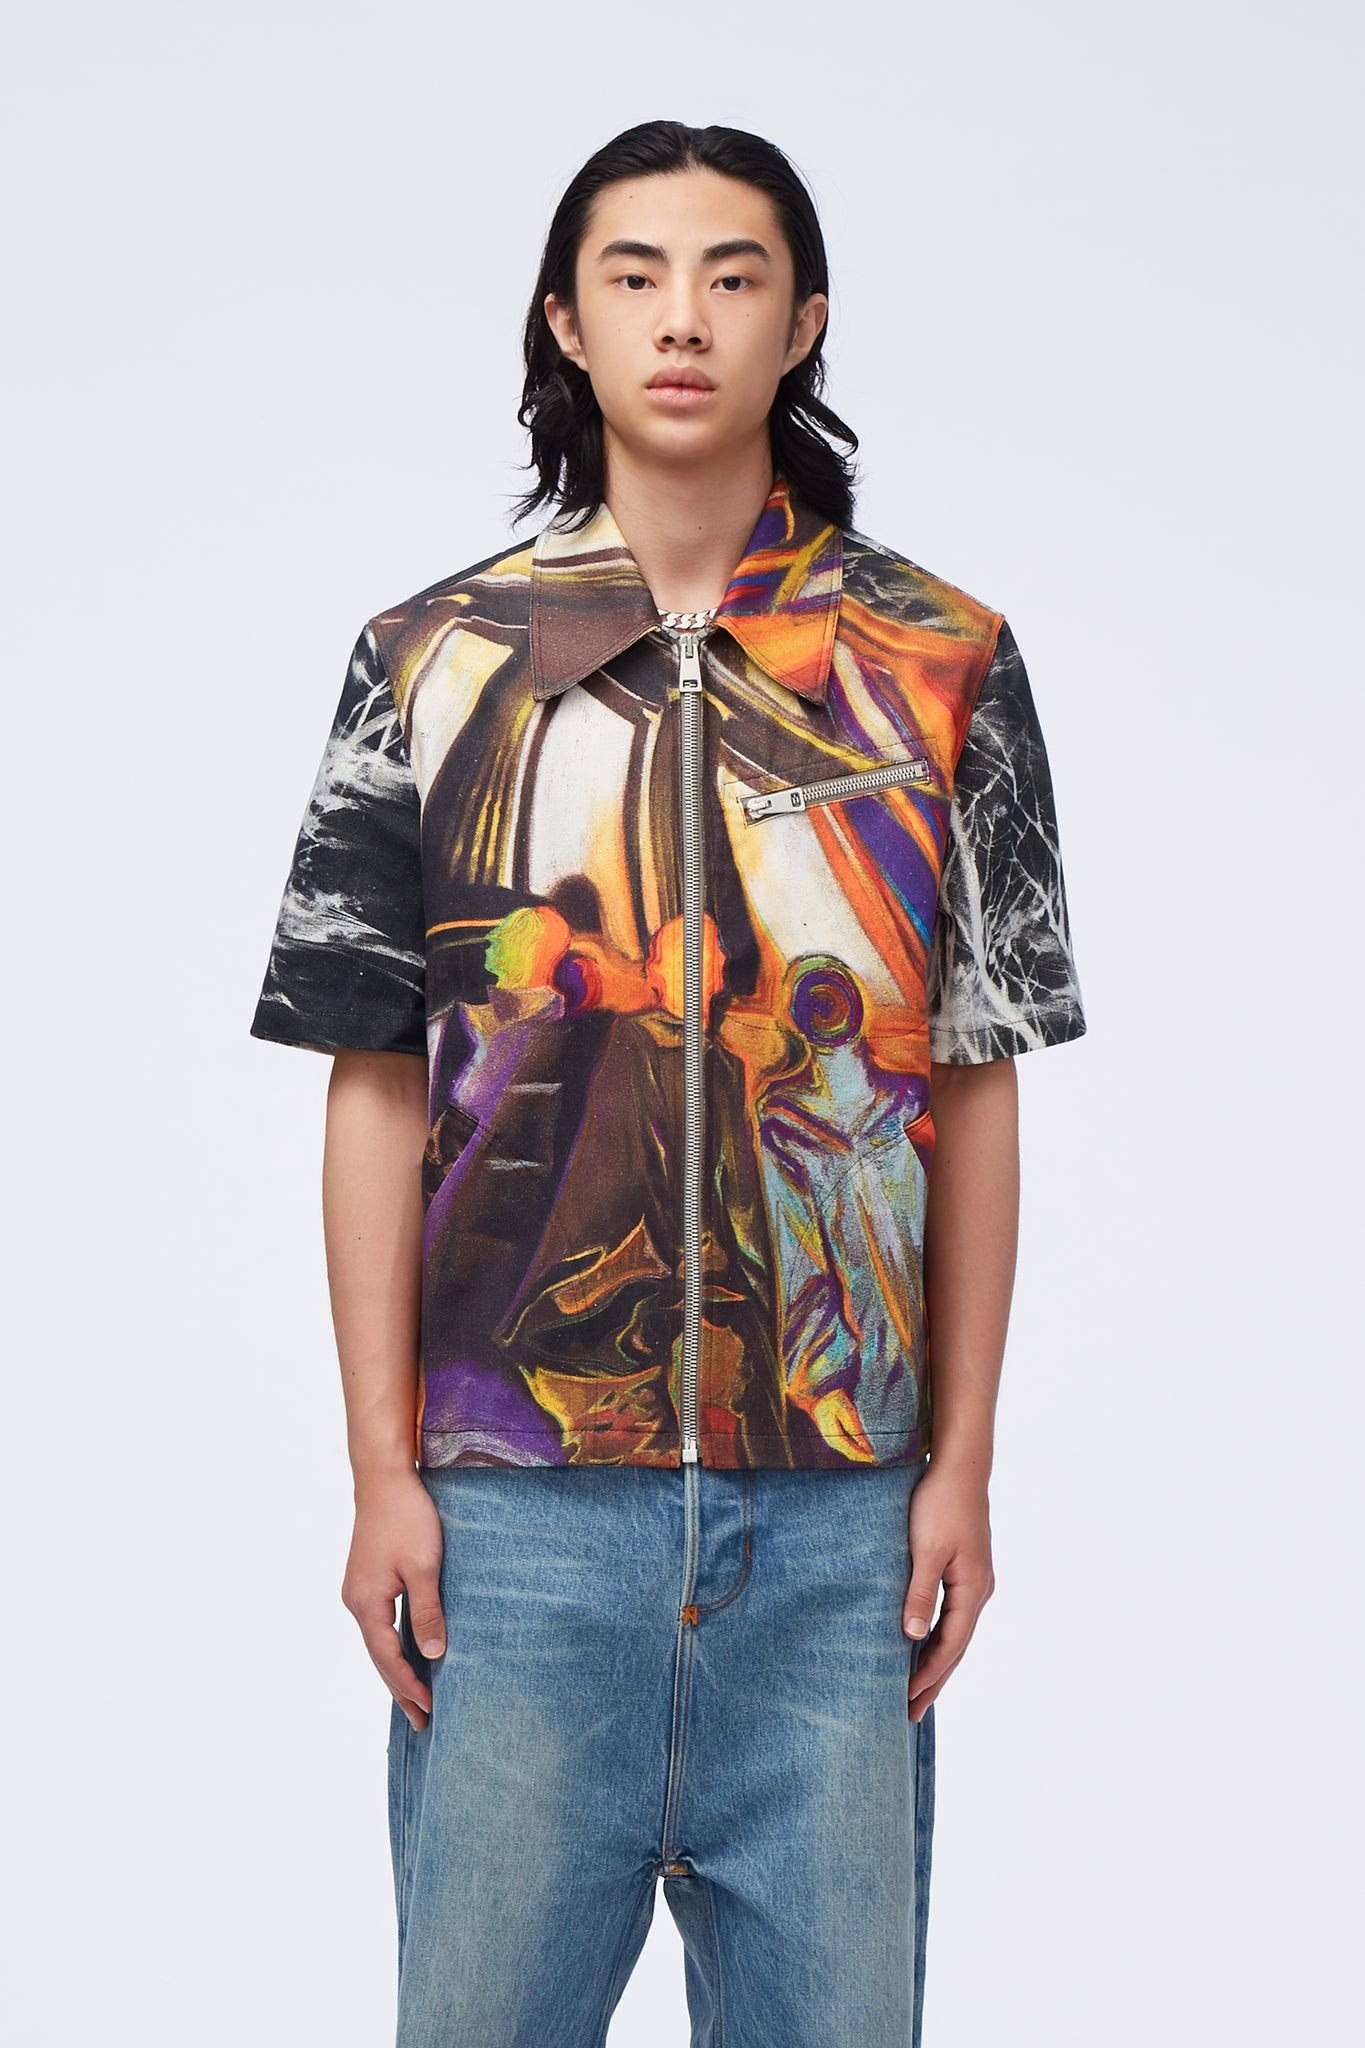 Moses Short Sleeve Jacket Illusional Oil Painting Orange